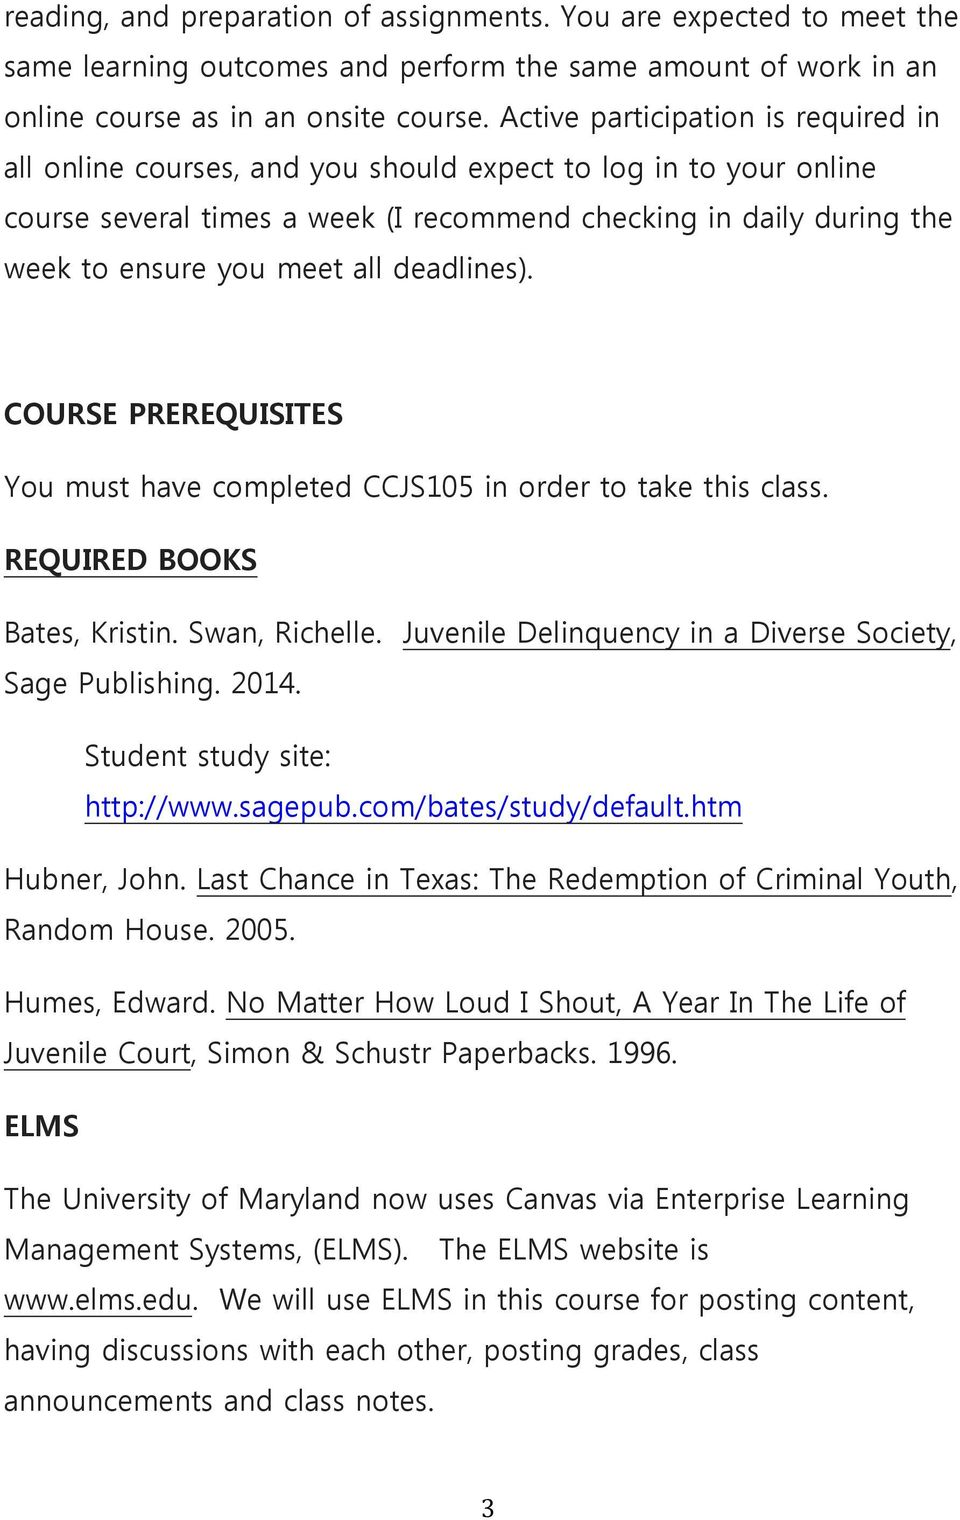 all deadlines). COURSE PREREQUISITES You must have completed CCJS105 in order to take this class. REQUIRED BOOKS Bates, Kristin. Swan, Richelle.